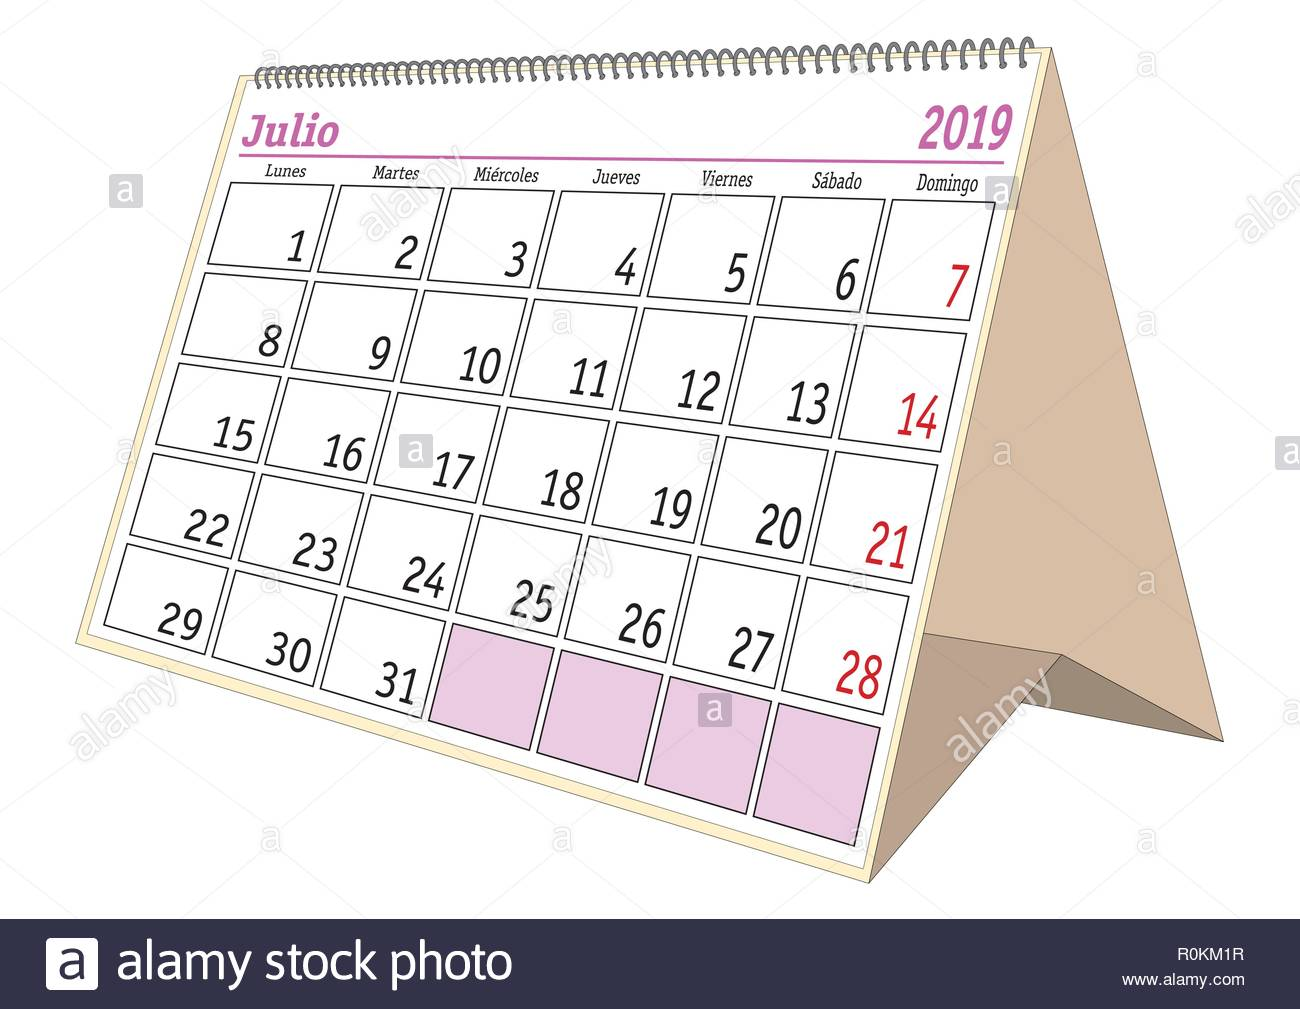 Calendario Julio 2019 Vector.July Sheet In An Spanish Desk Calendar For Year 2019